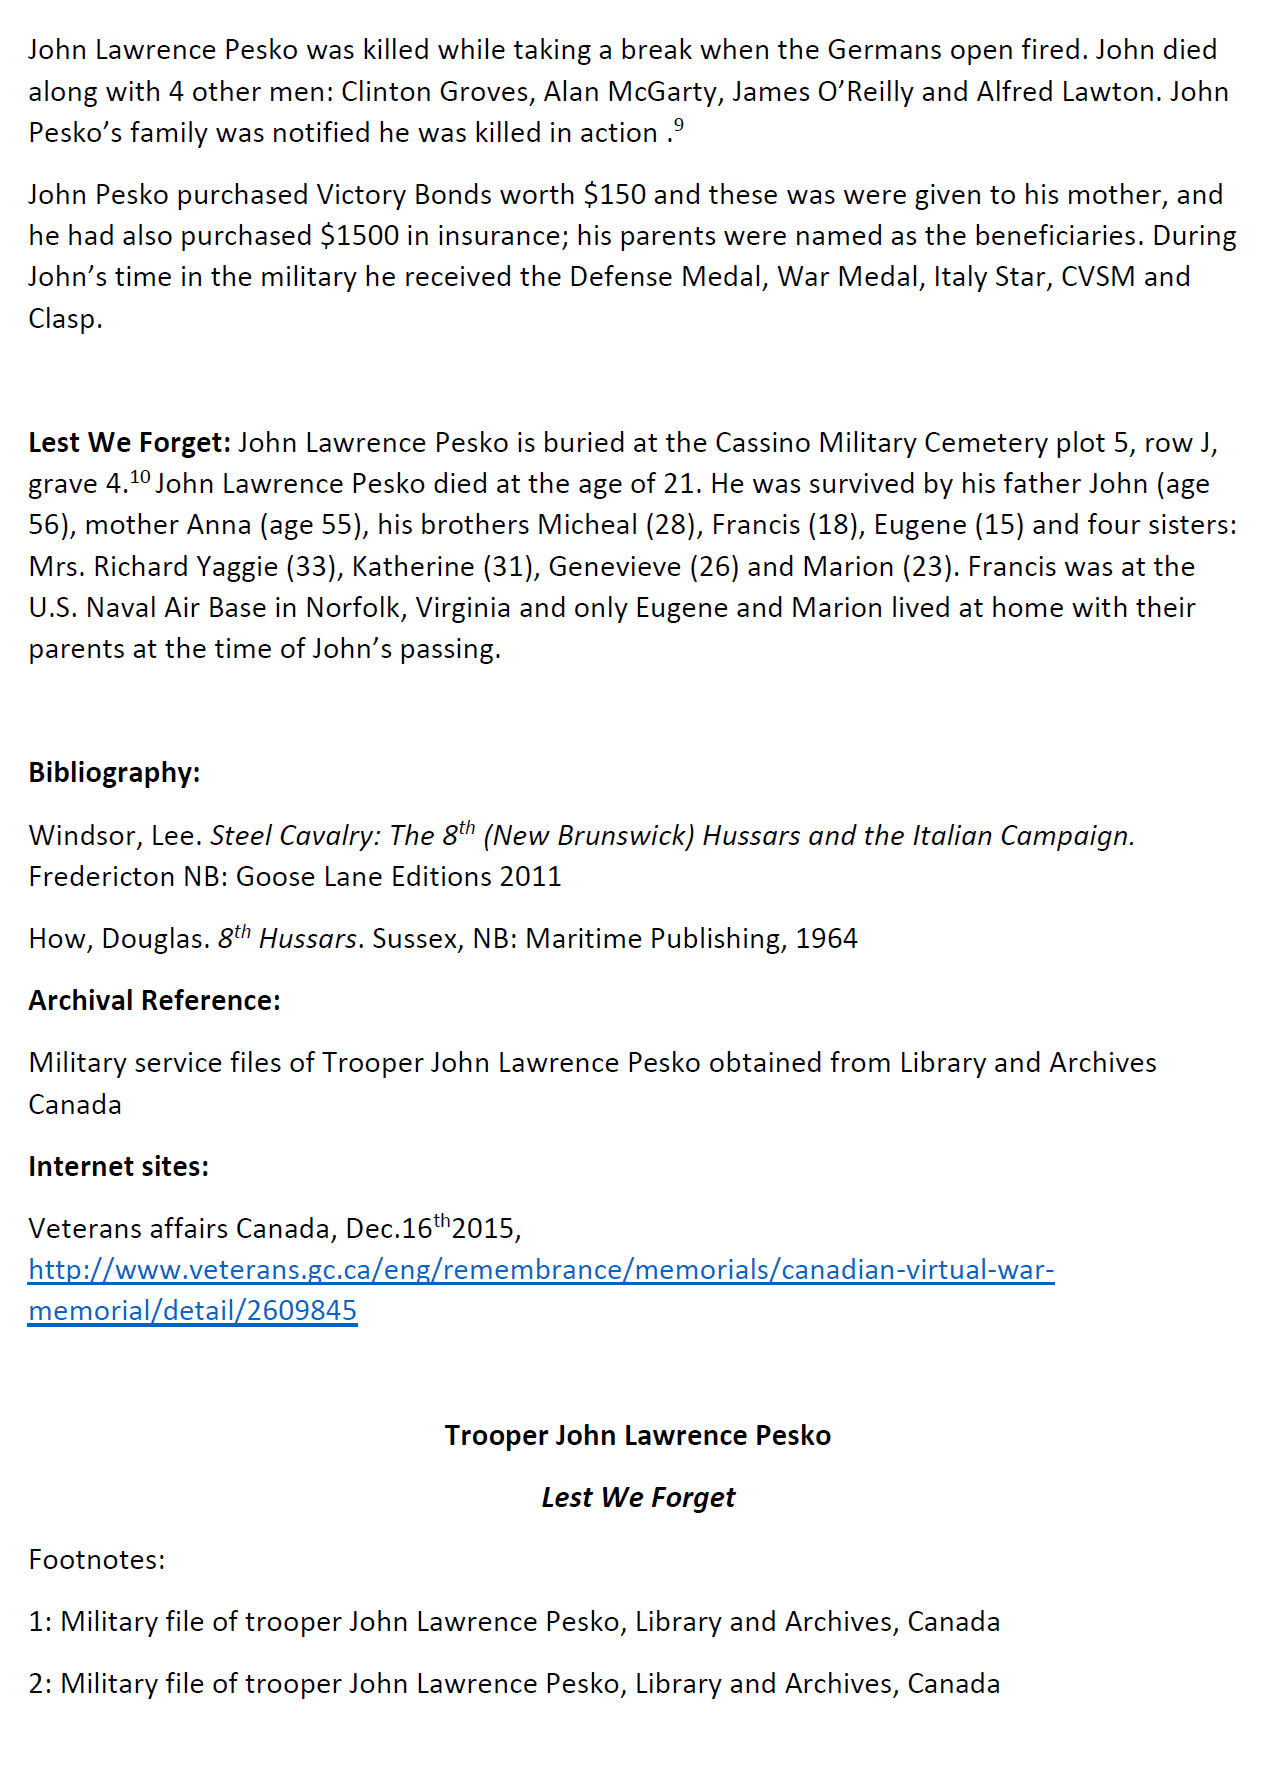 Essay (Page 2) – In 2015, the grade 11 Modern History students at Belleisle Regional High School continued to write biographies for soldiers from the local area who died during the First and Second World Wars.